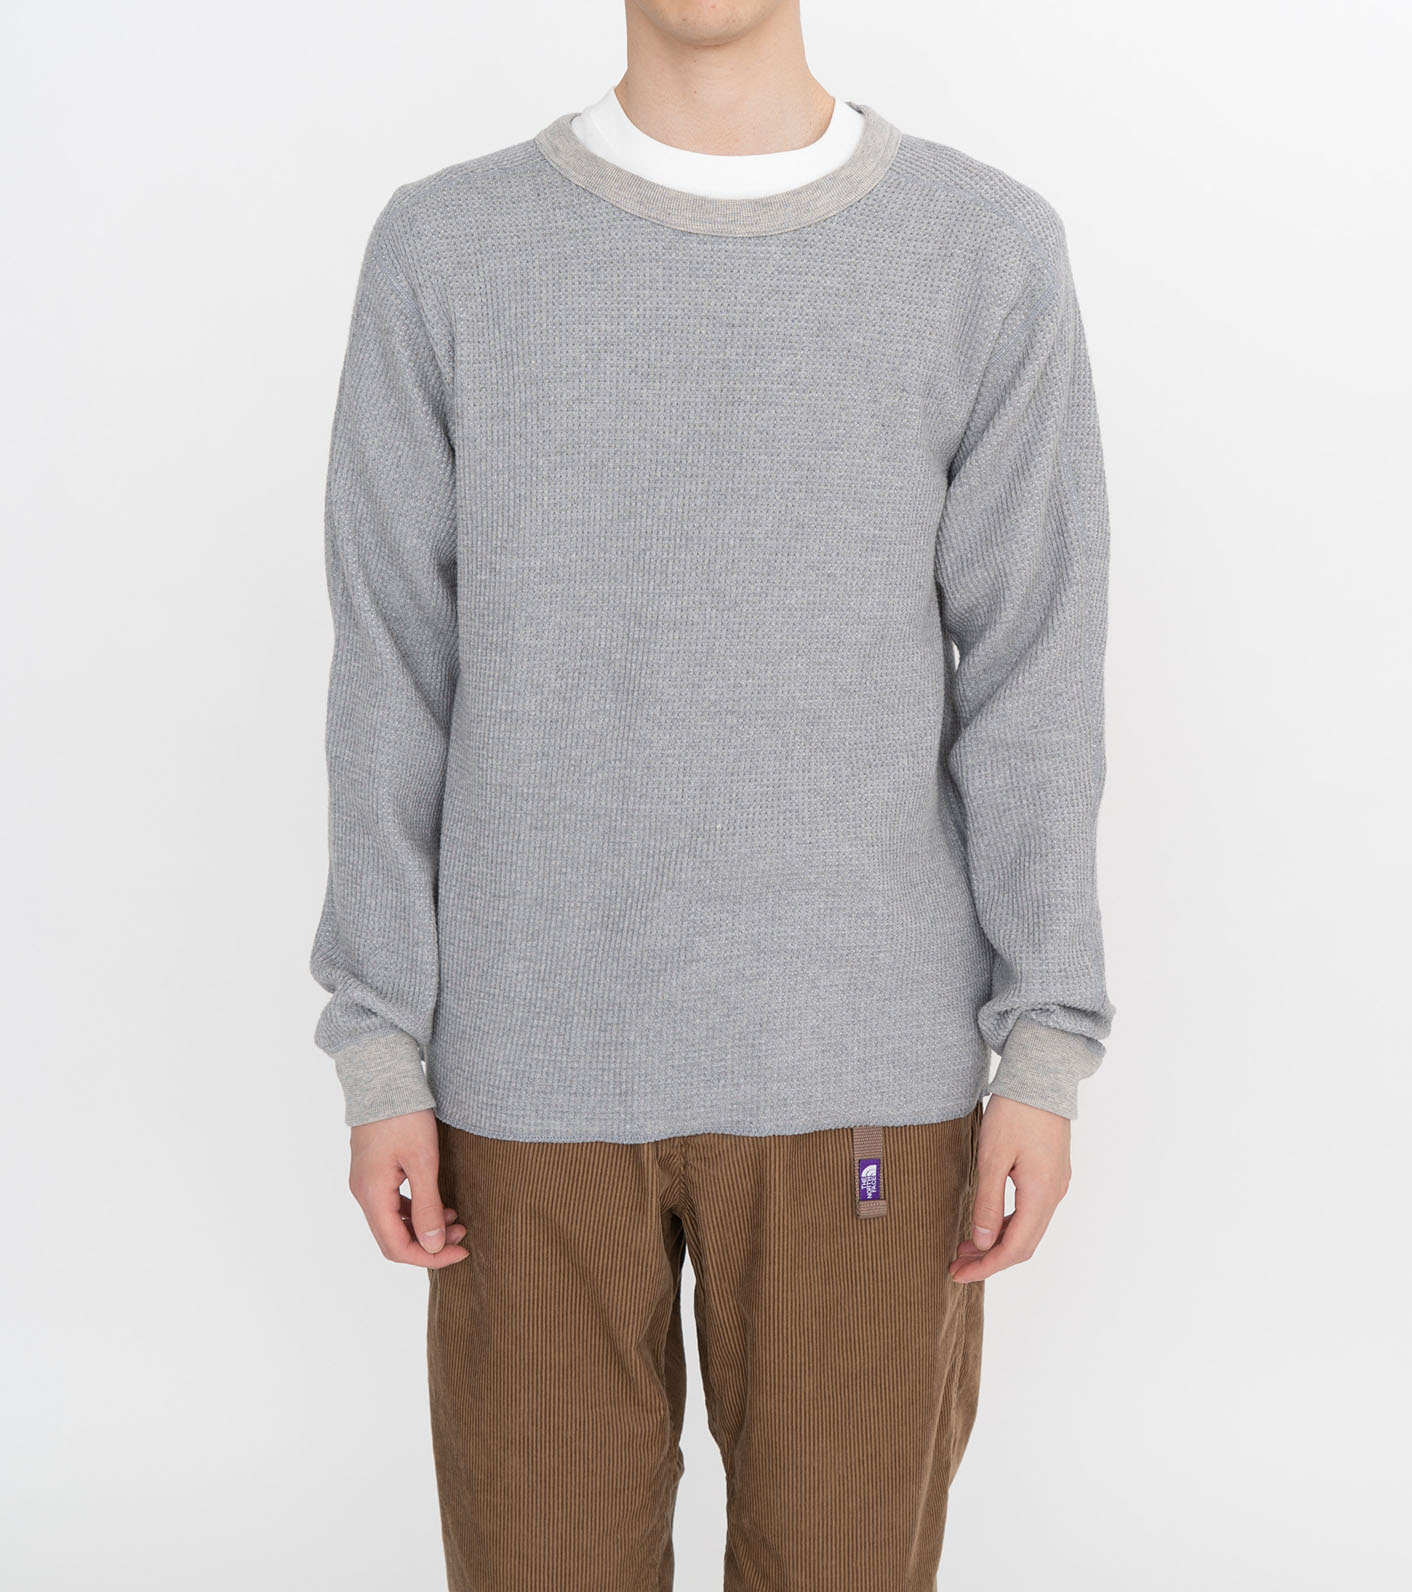 Crew Neck Thermal Shirt